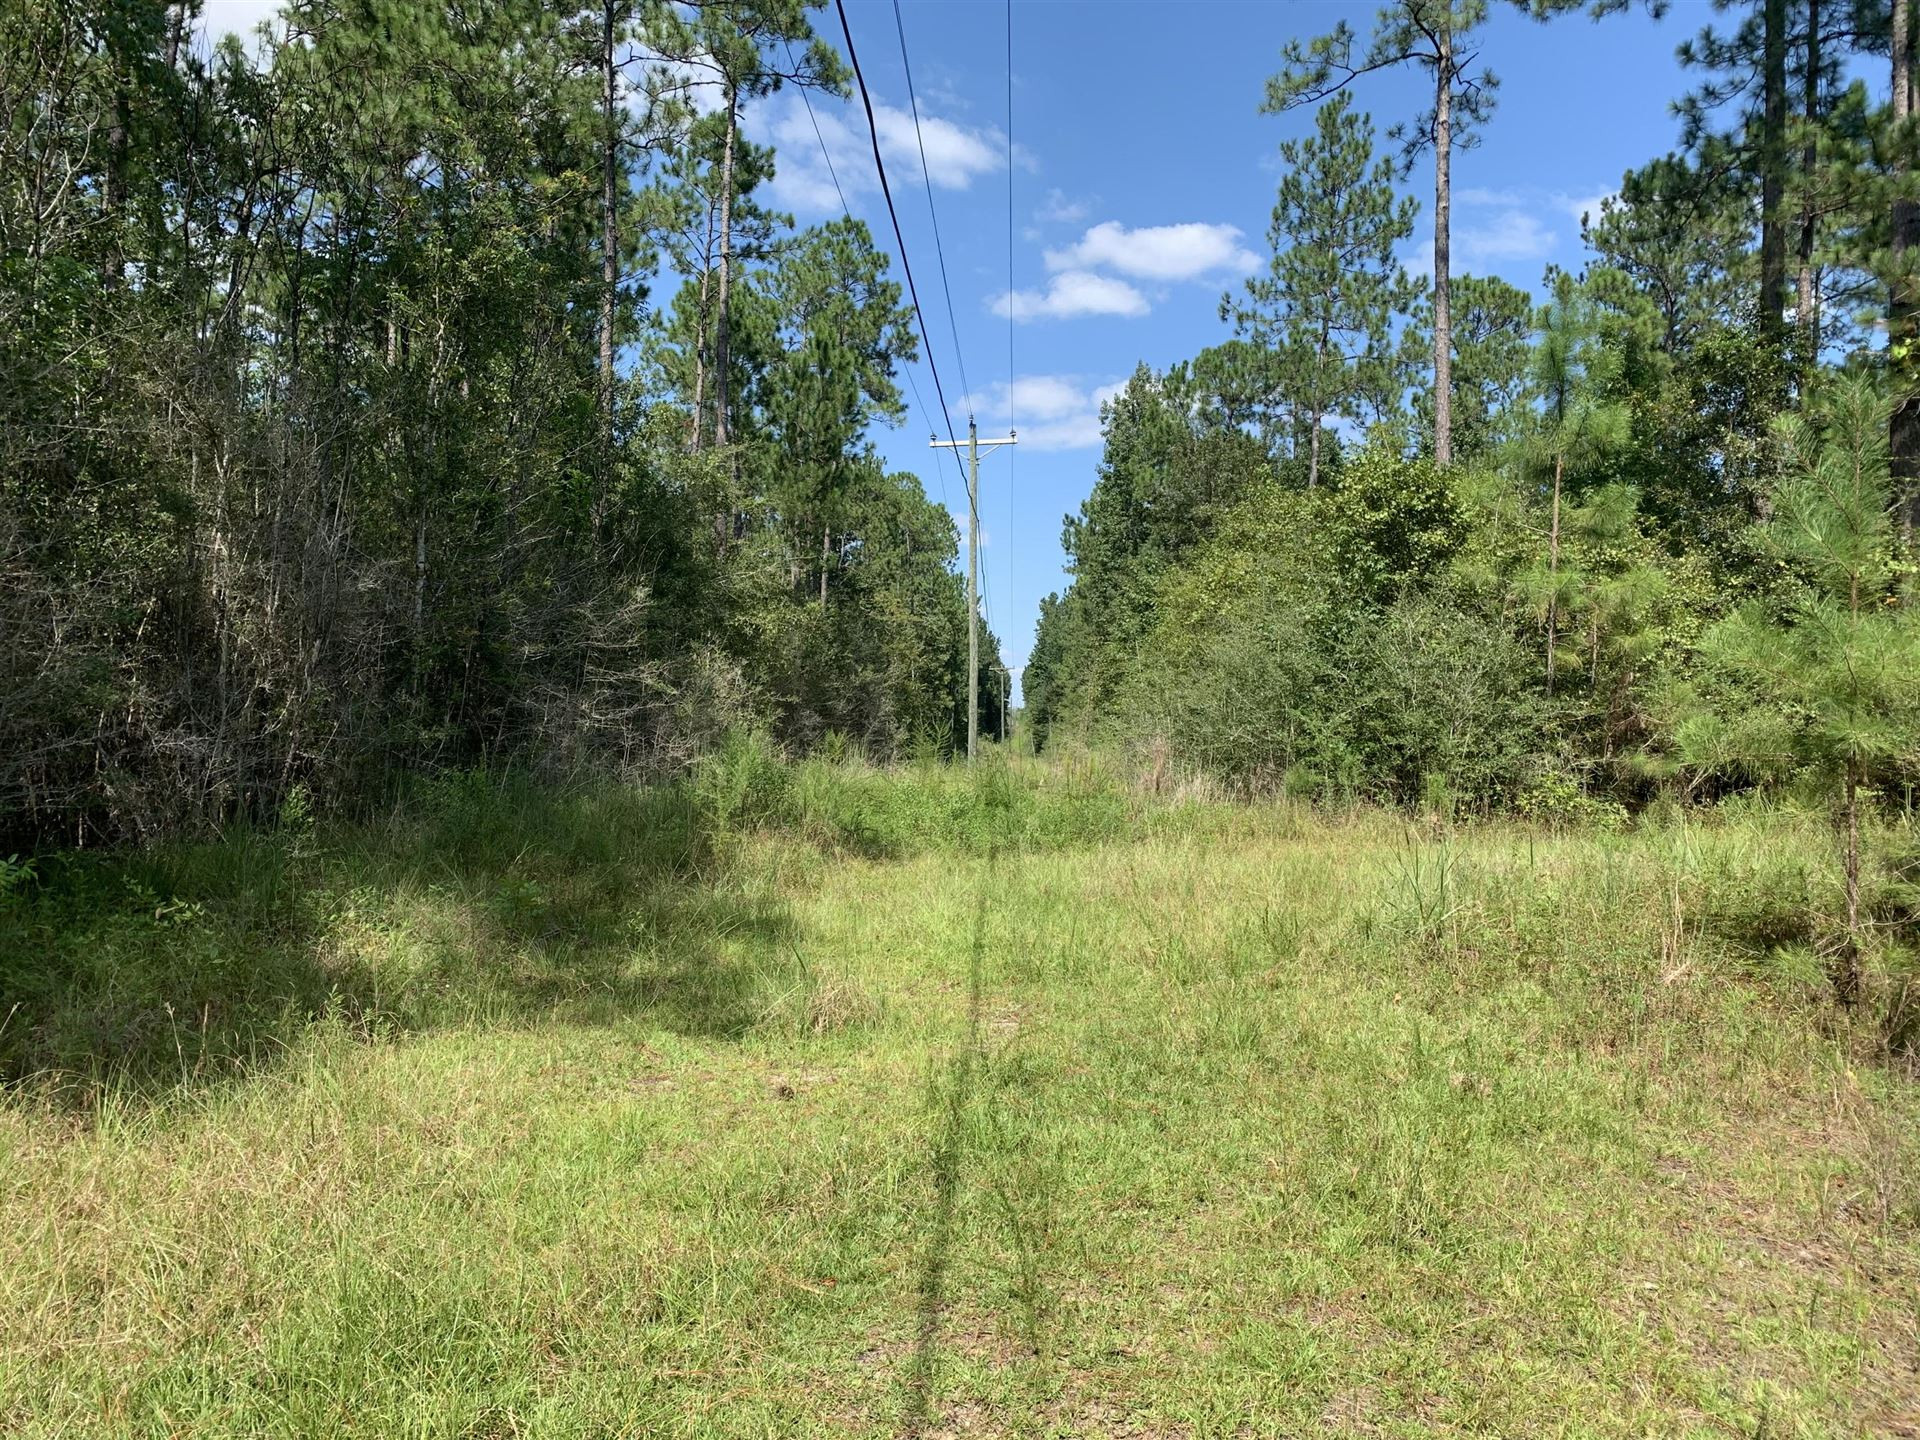 Photo of 56 ac MOL Red Hill Church Rd., Poplarville, MS 39470 (MLS # 127385)